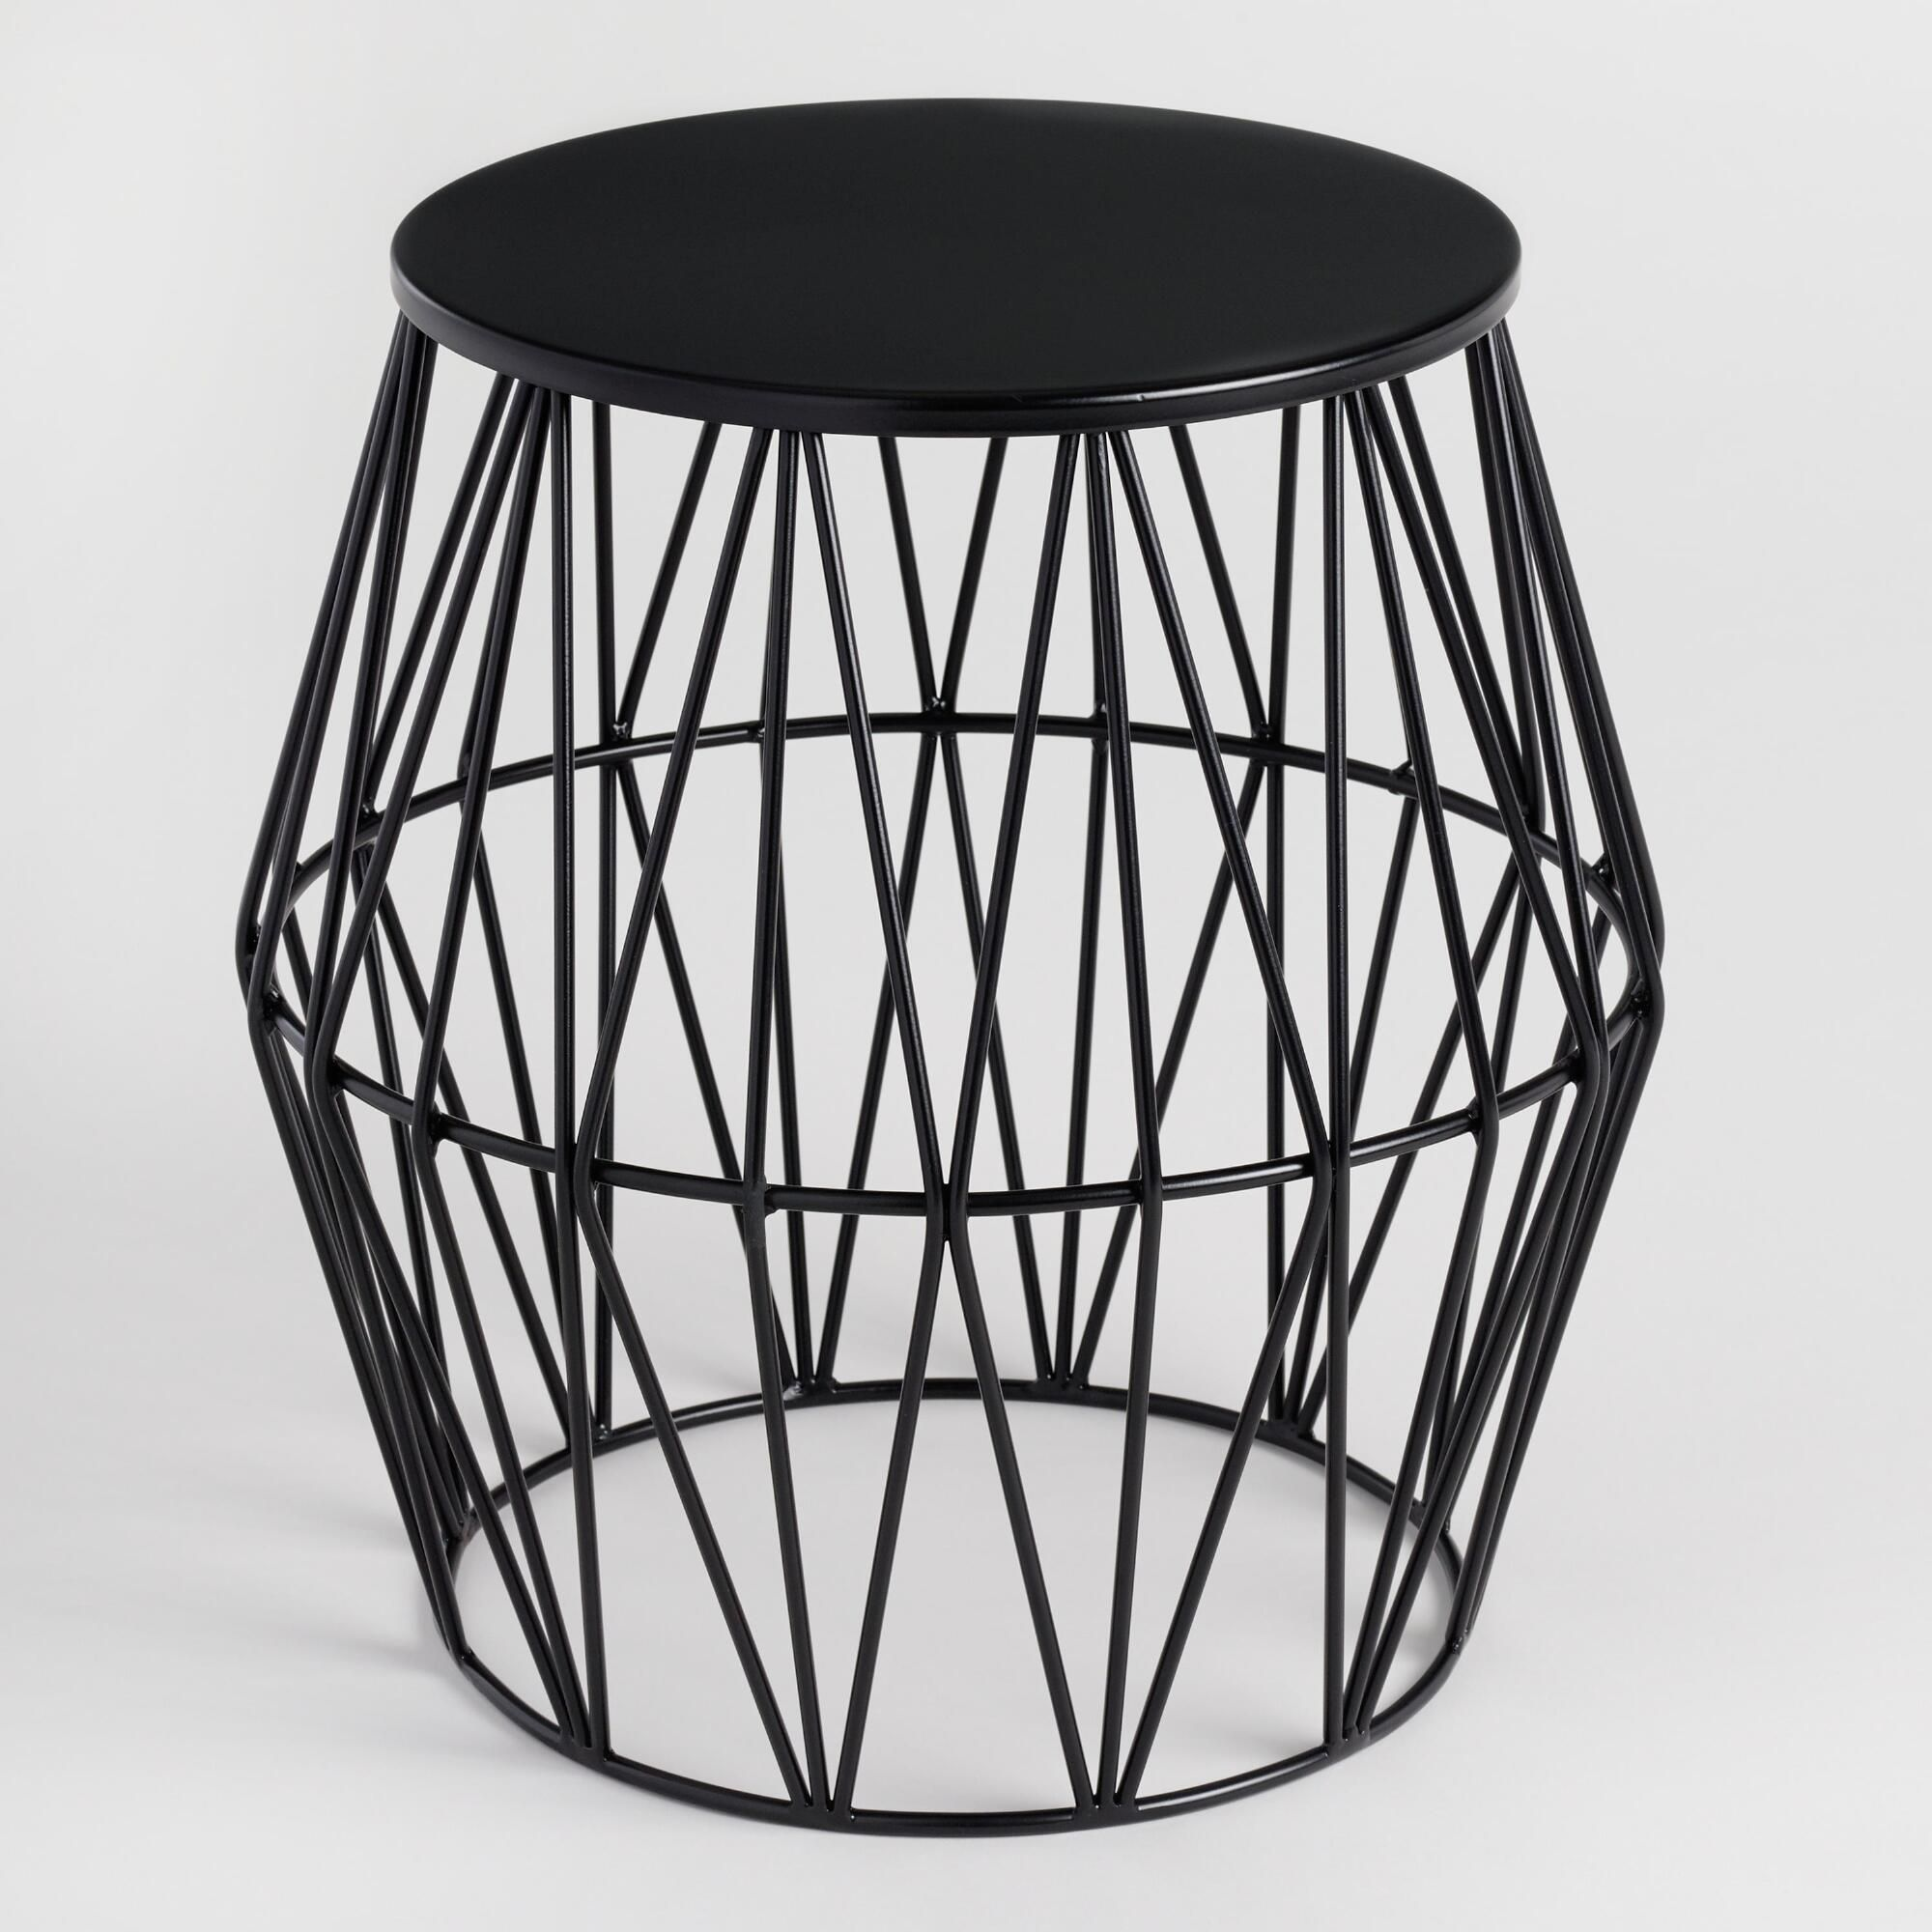 Swell Black Octavia Faceted Outdoor Patio Stool By World Market In Machost Co Dining Chair Design Ideas Machostcouk